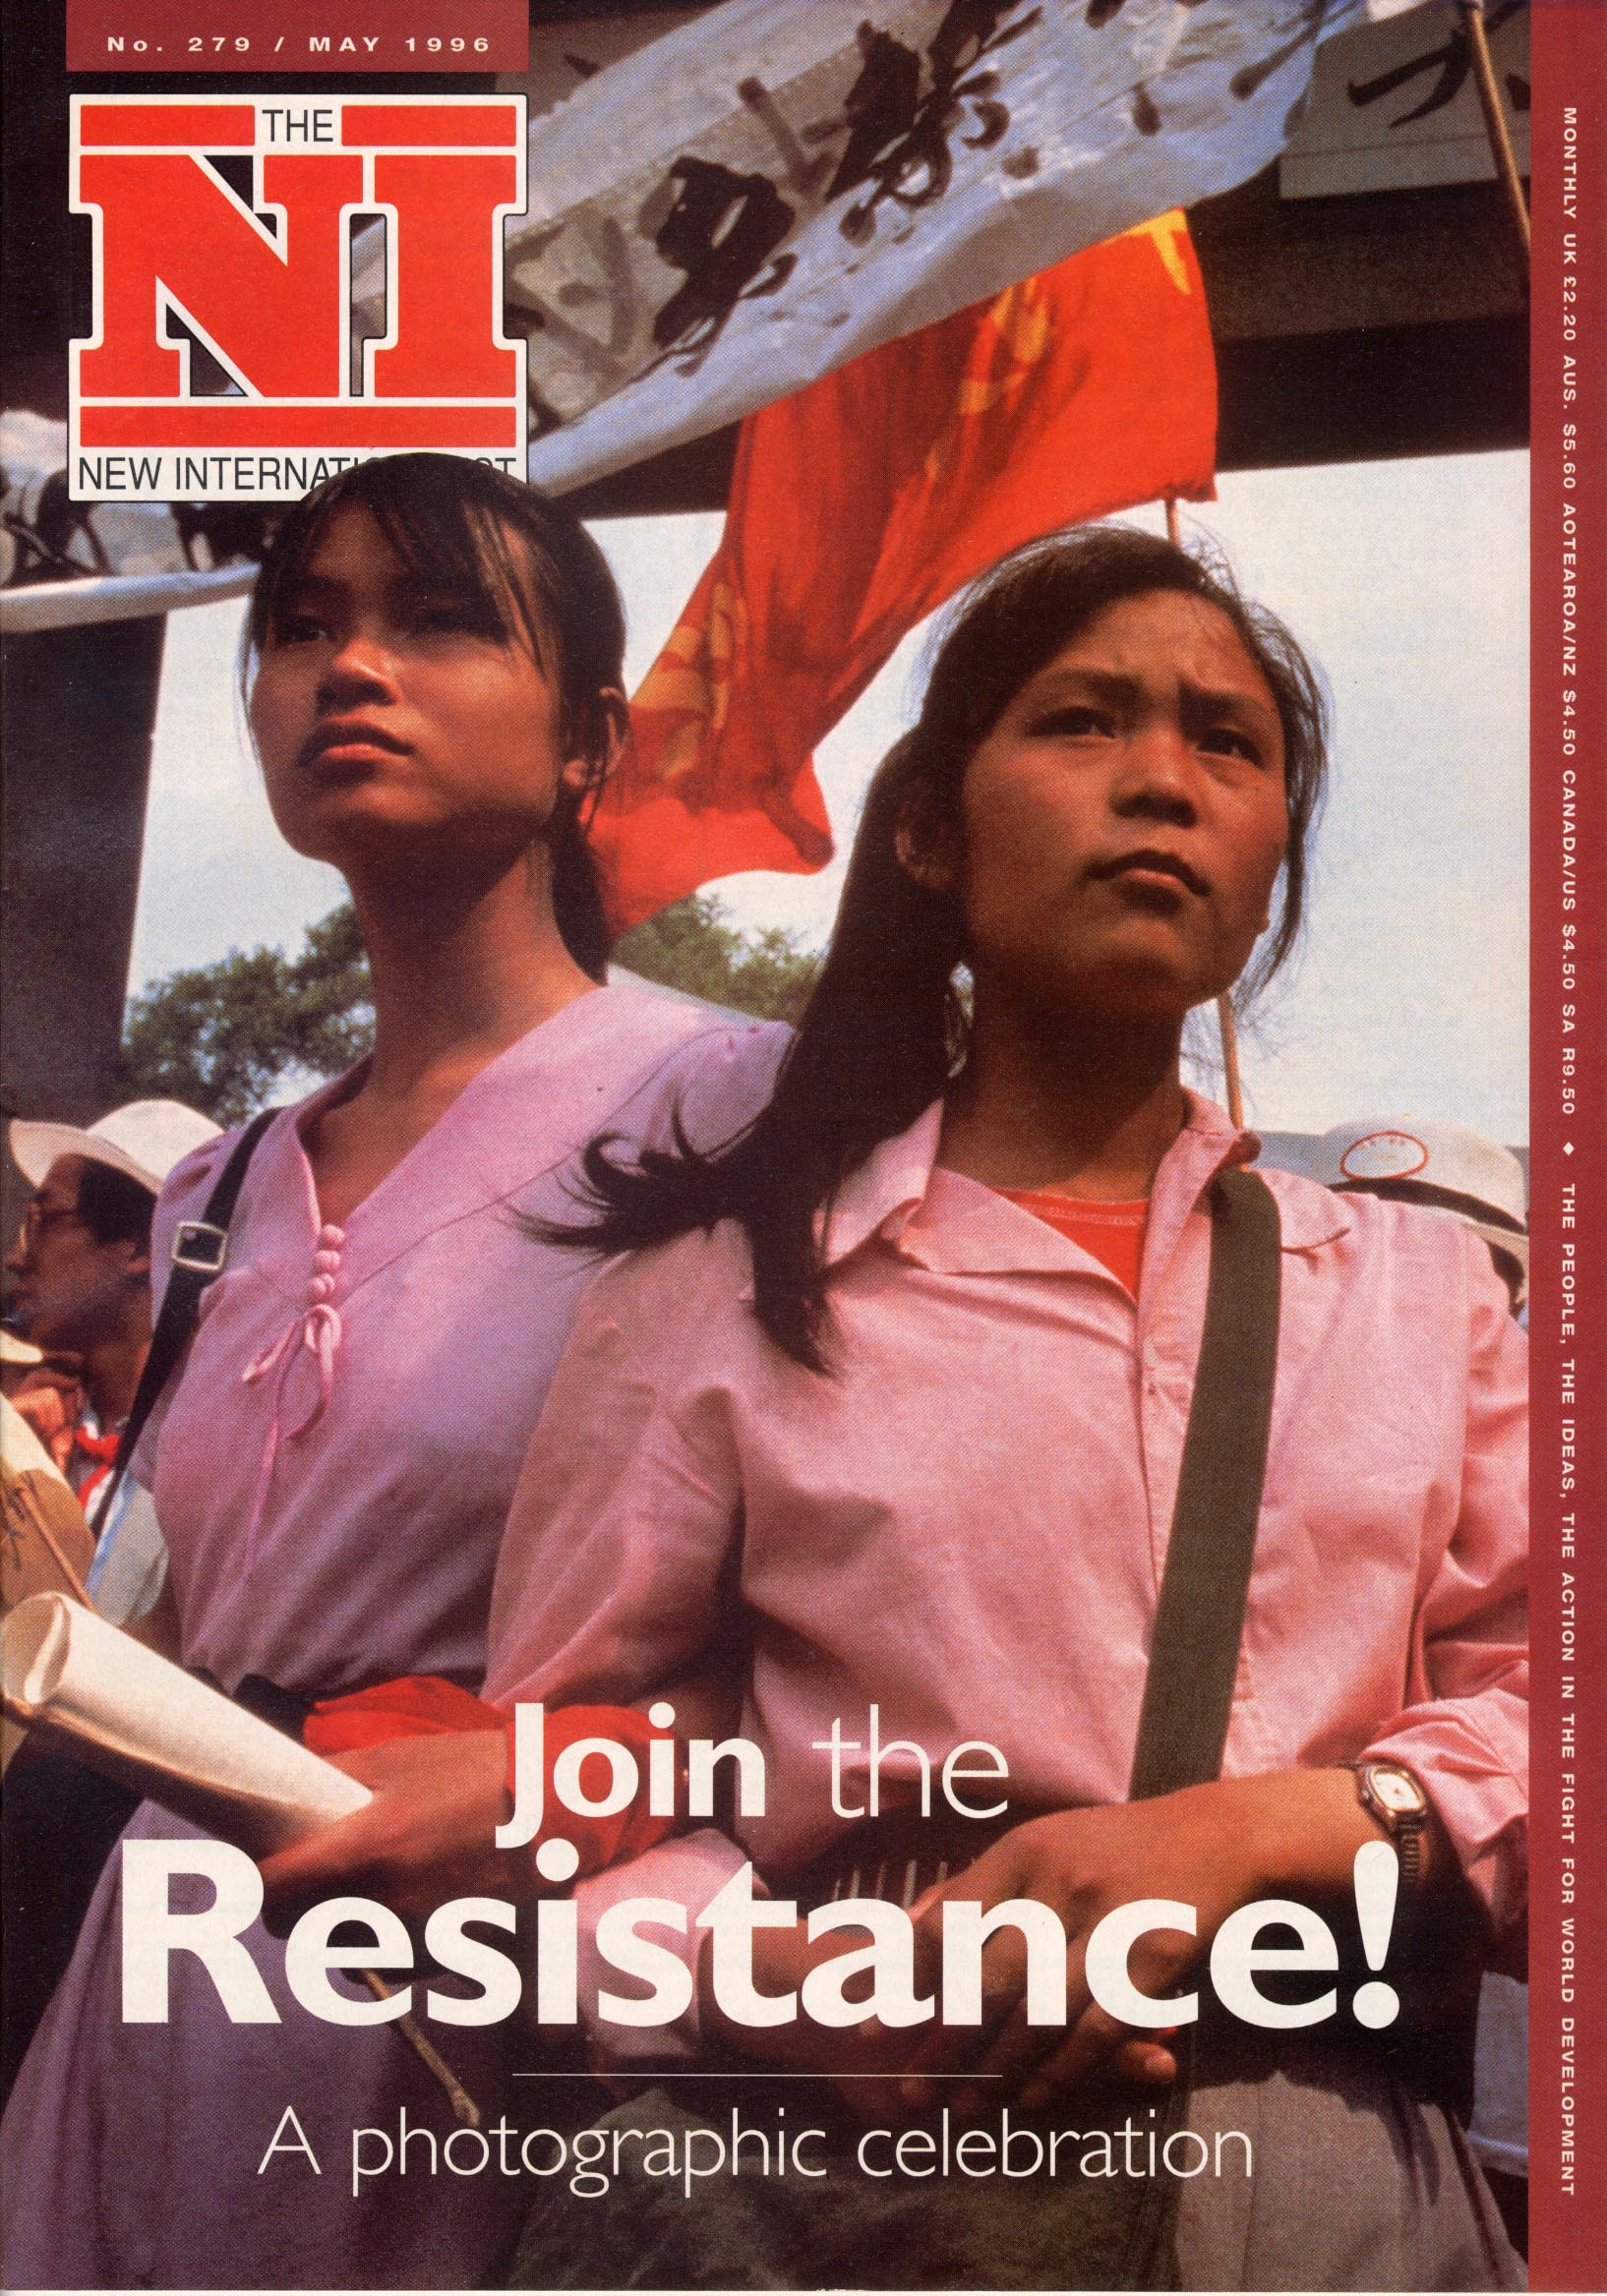 New Internationalist issue 279 magazine cover